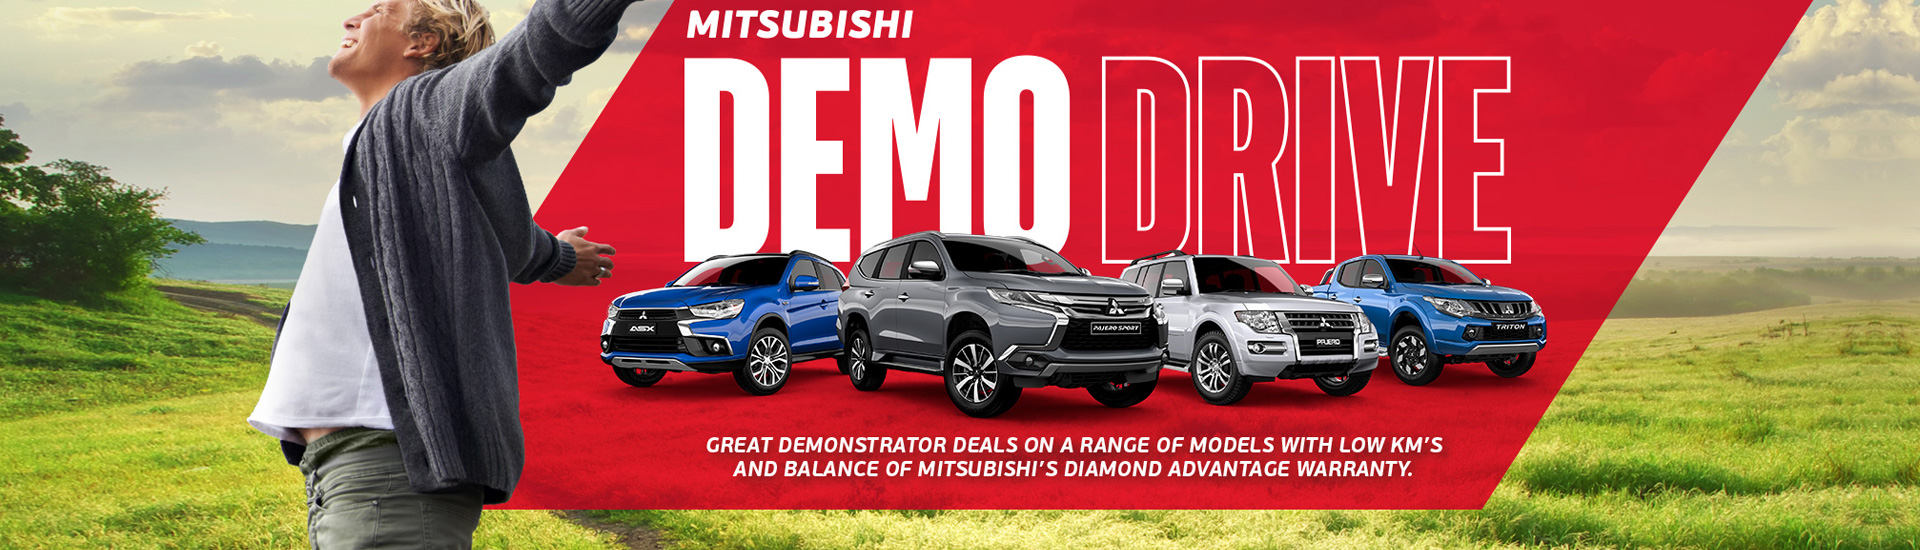 Mitsubishi - July Offer Banner